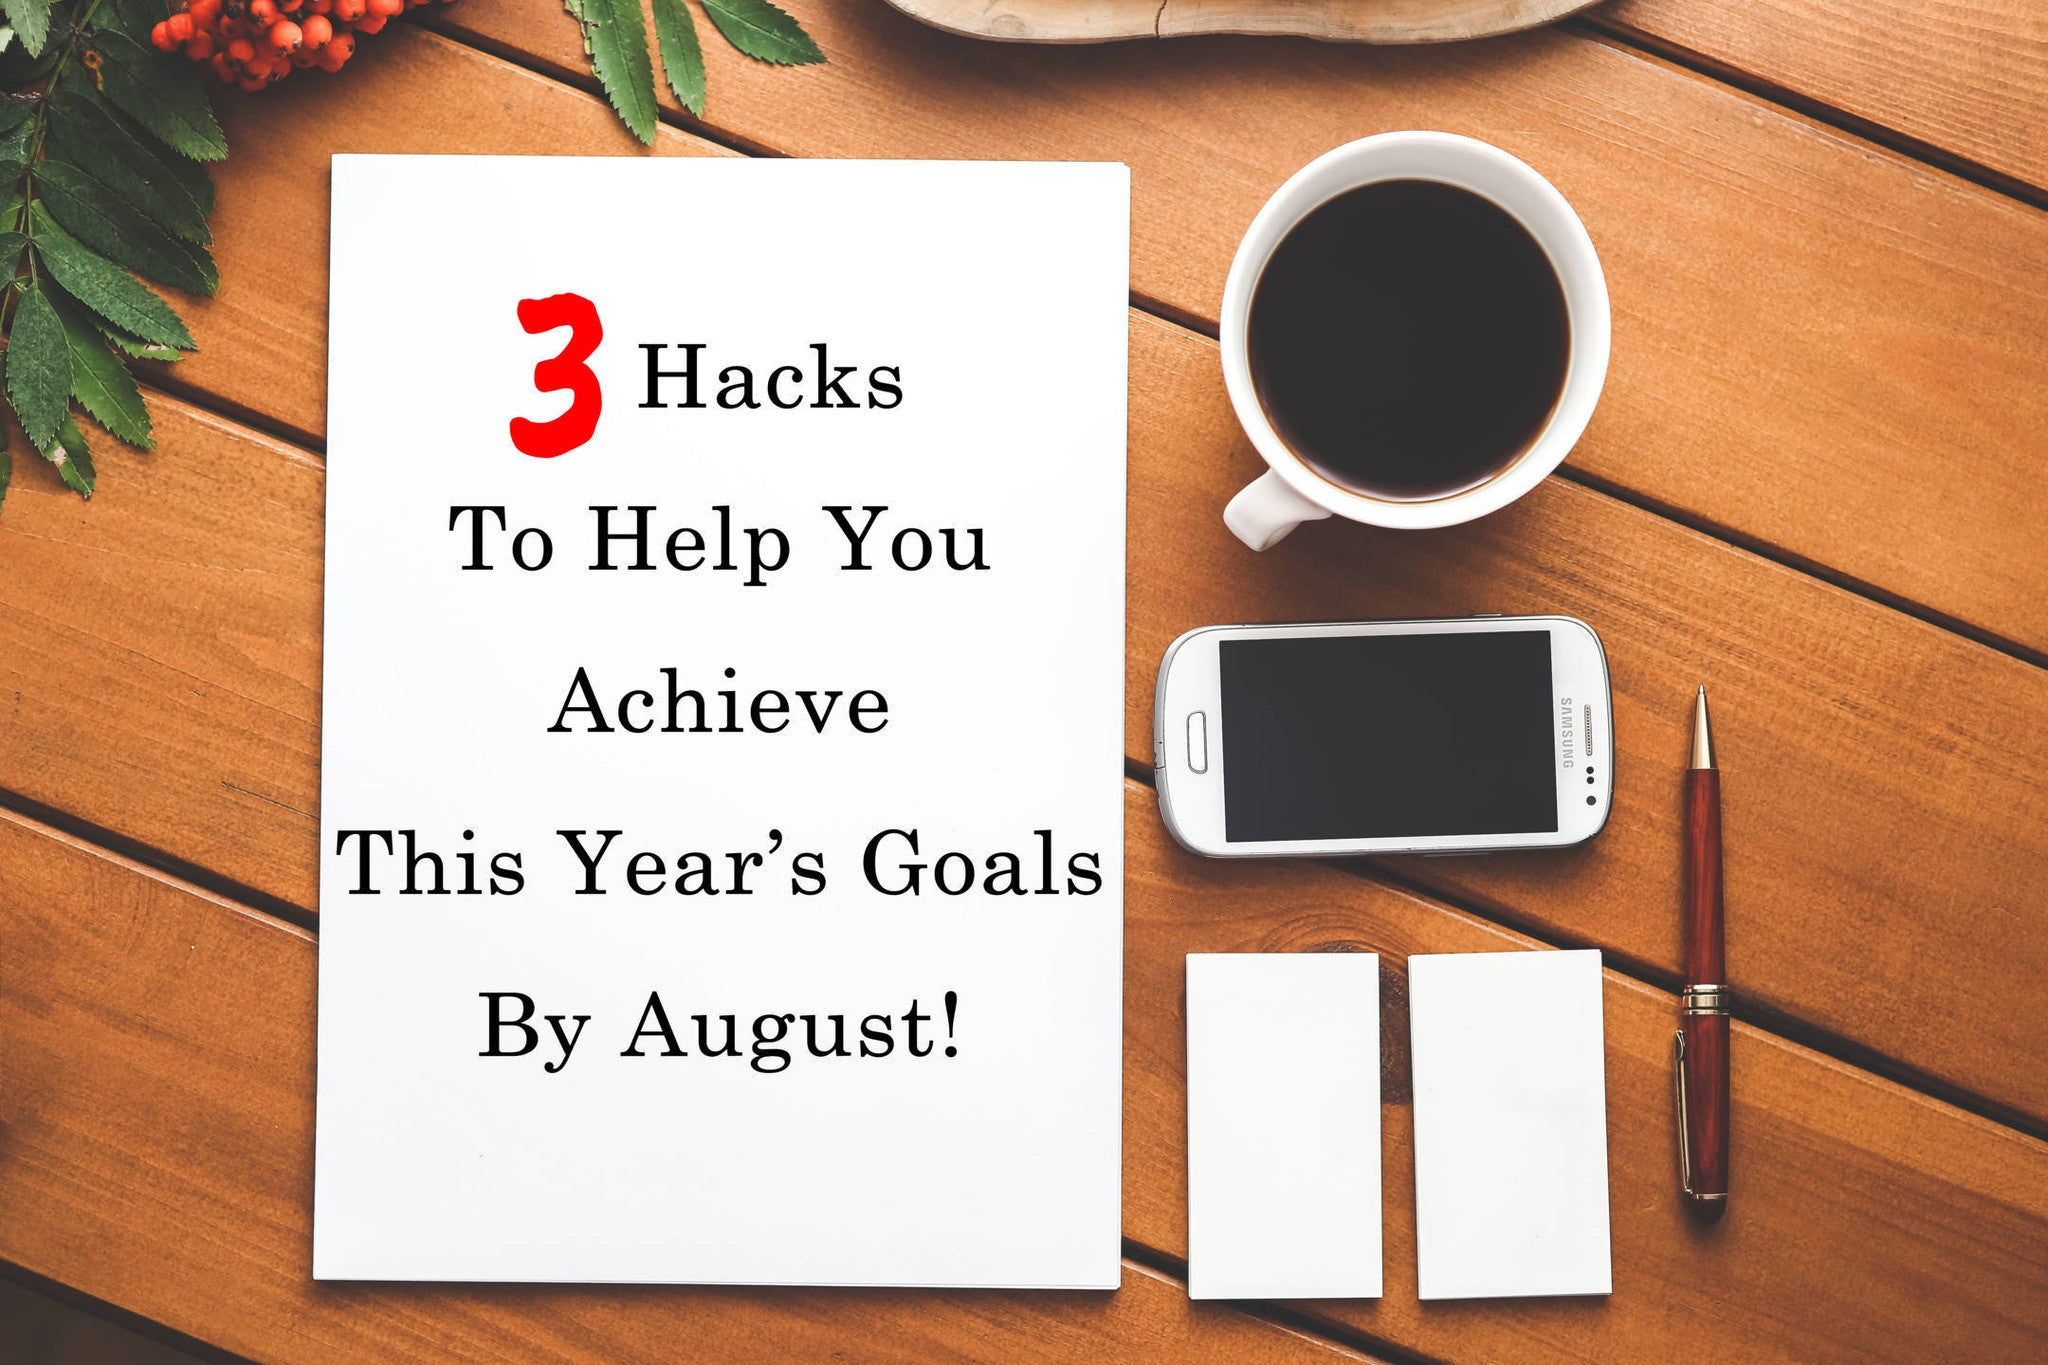 3 hacks to help you achieve this year's goals by august.